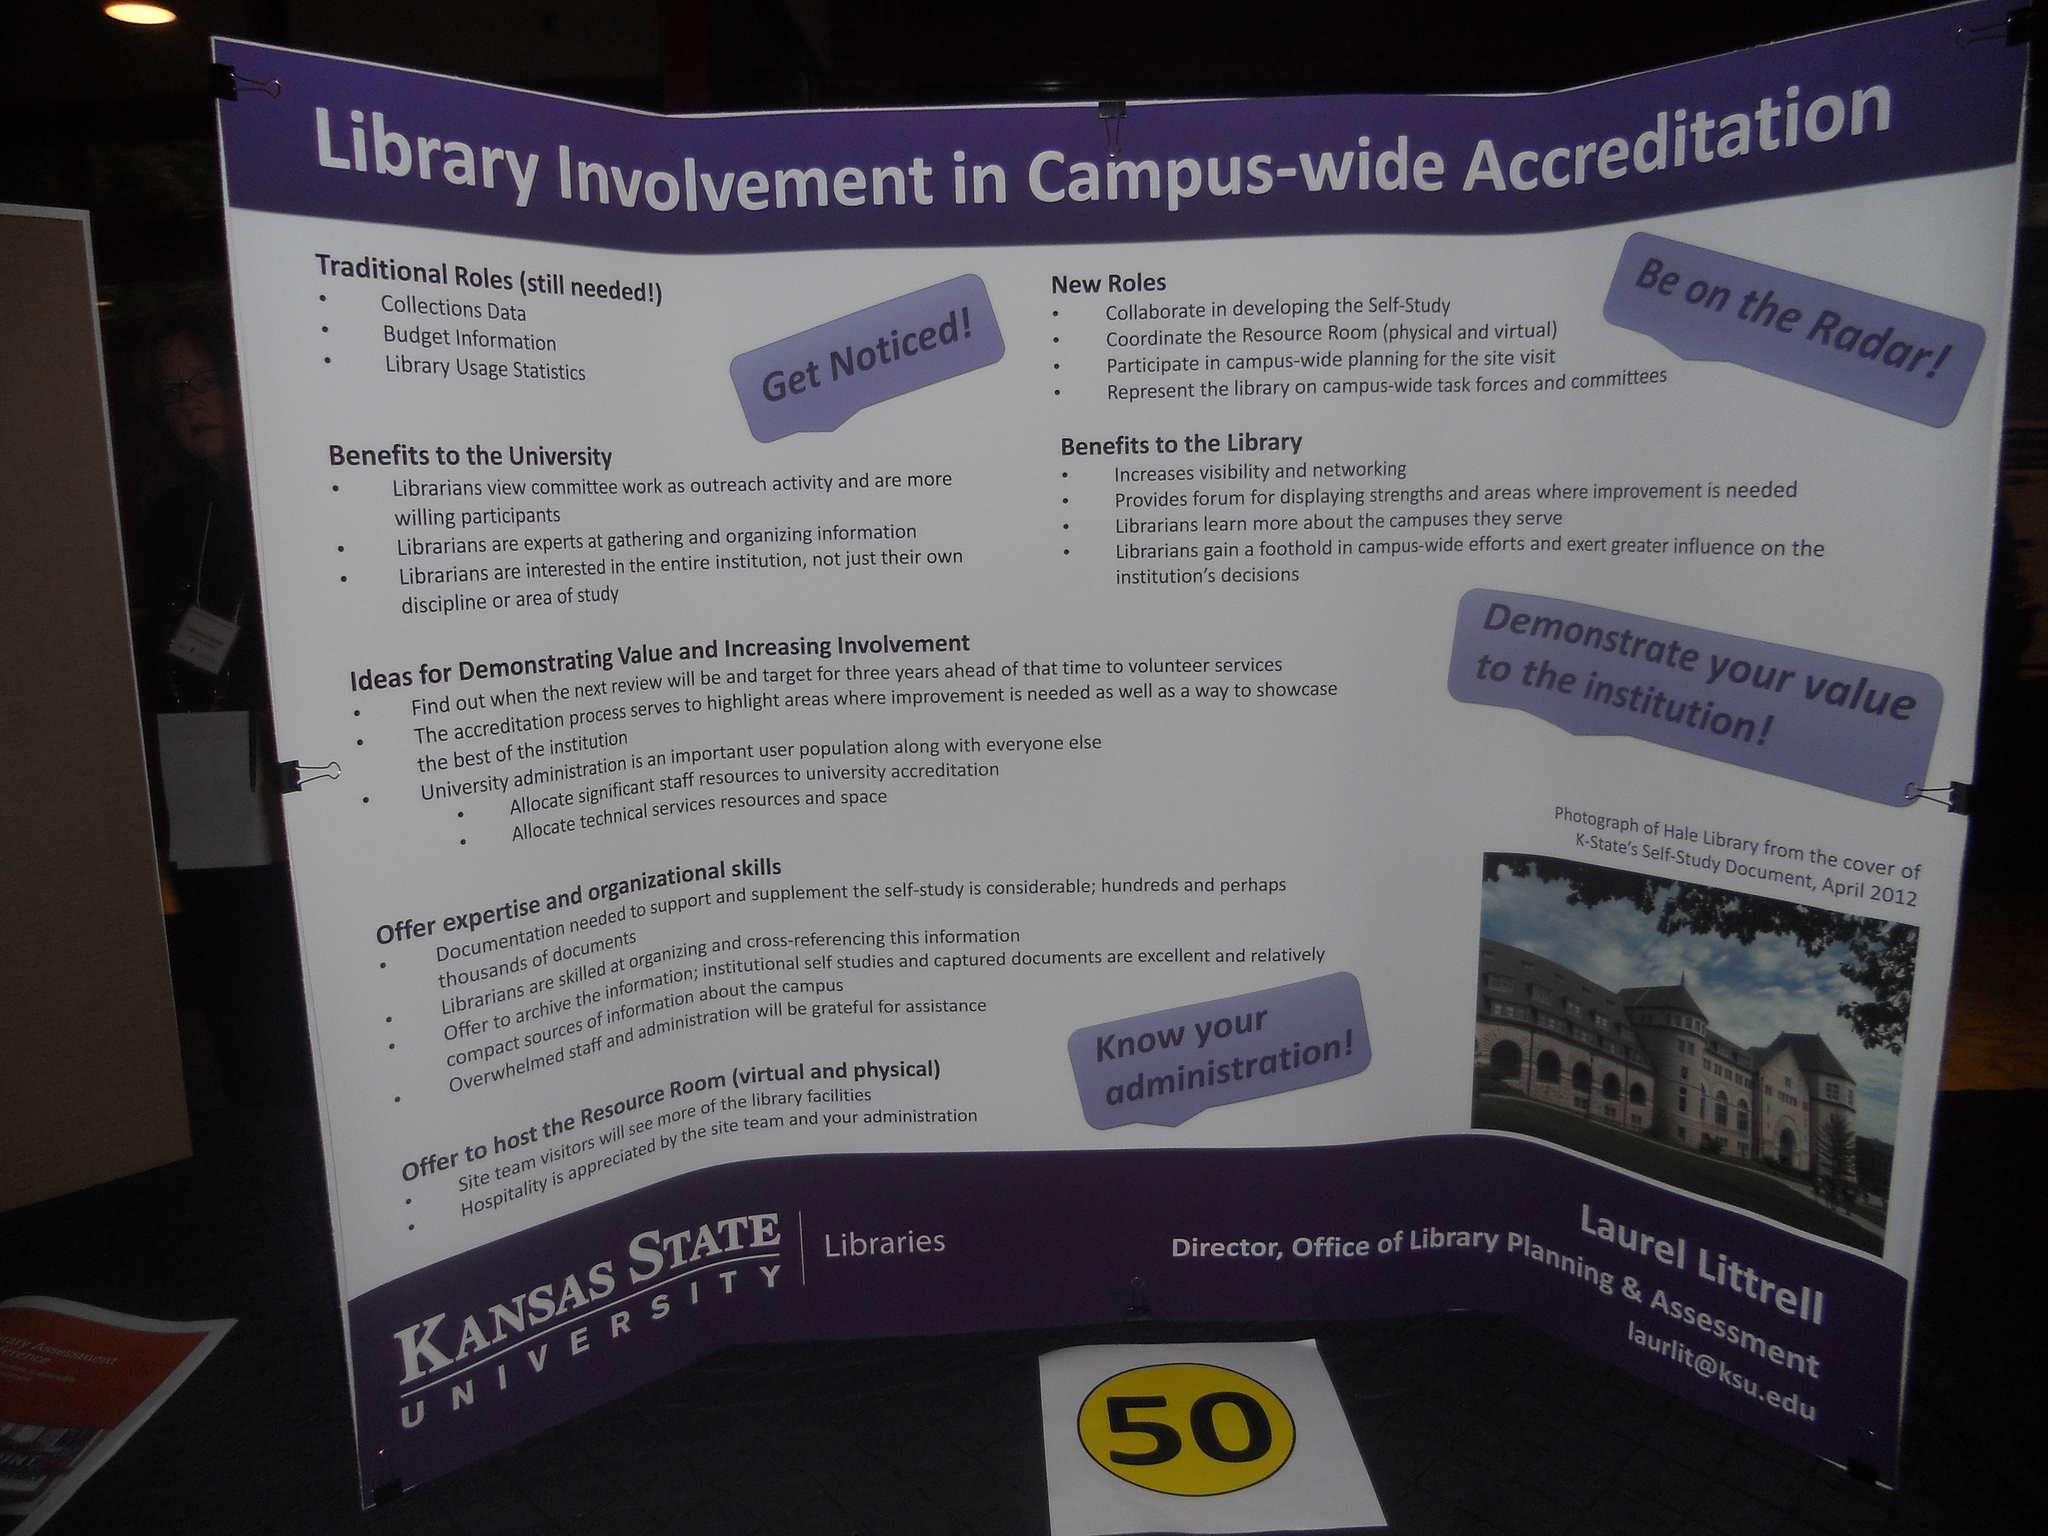 2012 poster presentations library assessment conference laurel littrell kansas state university fandeluxe Choice Image